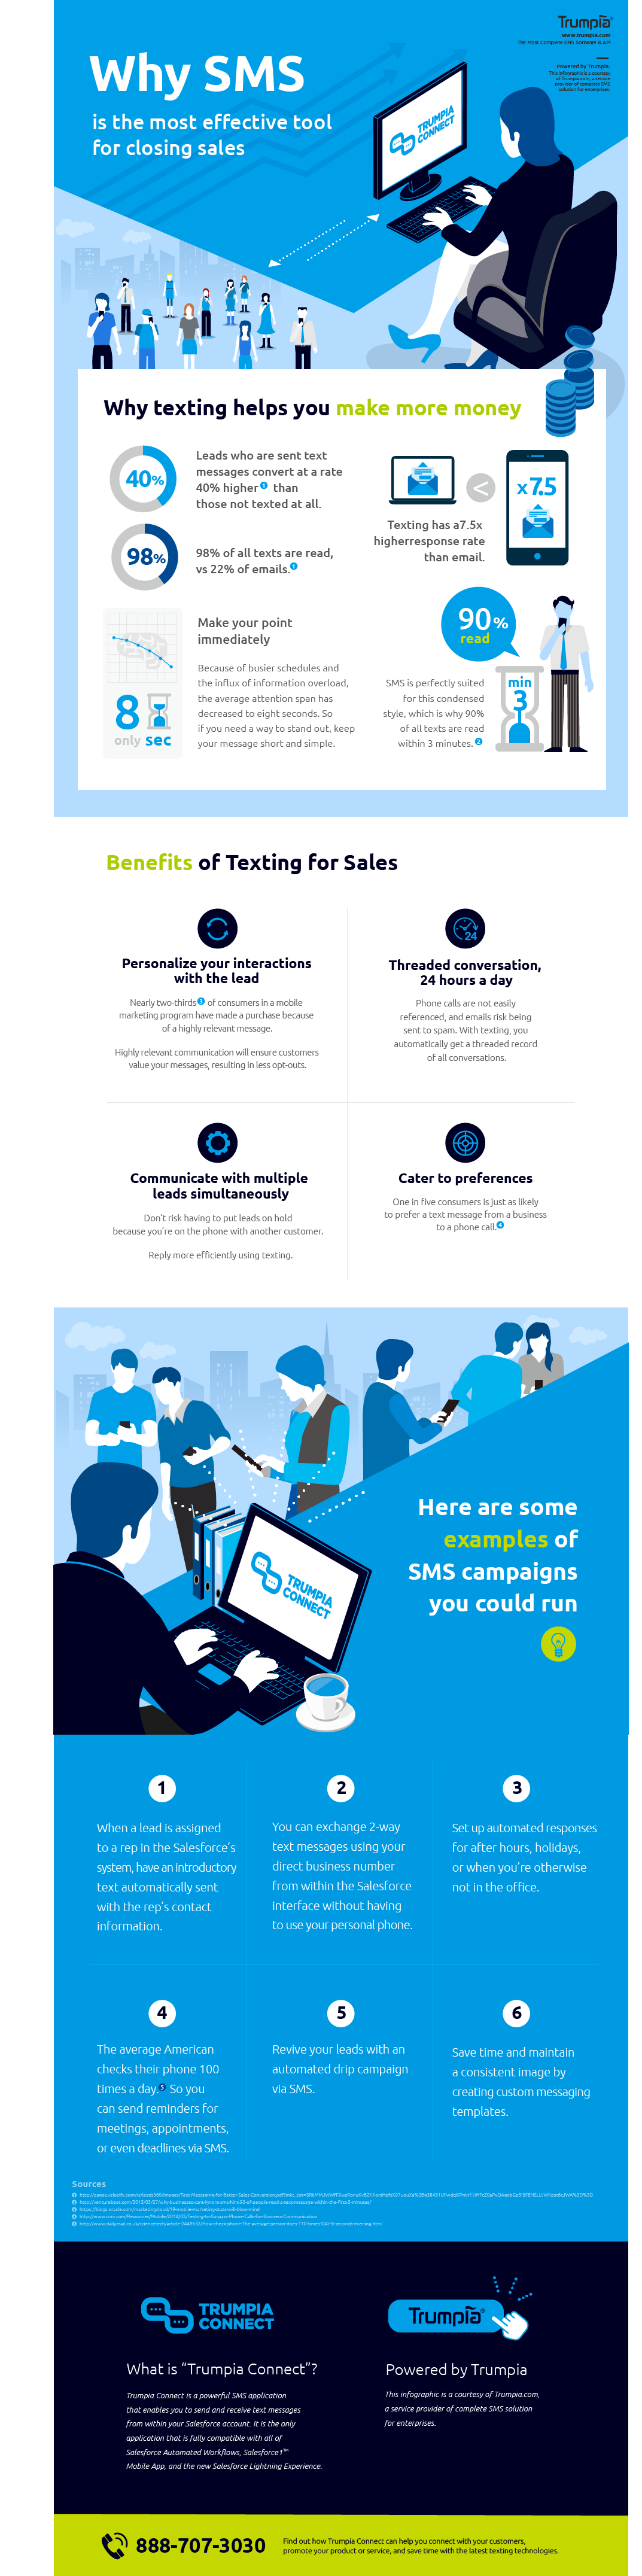 Trumpia Connect Infographic - Why SMS is the Most Effective Tool for Closing Sales.png